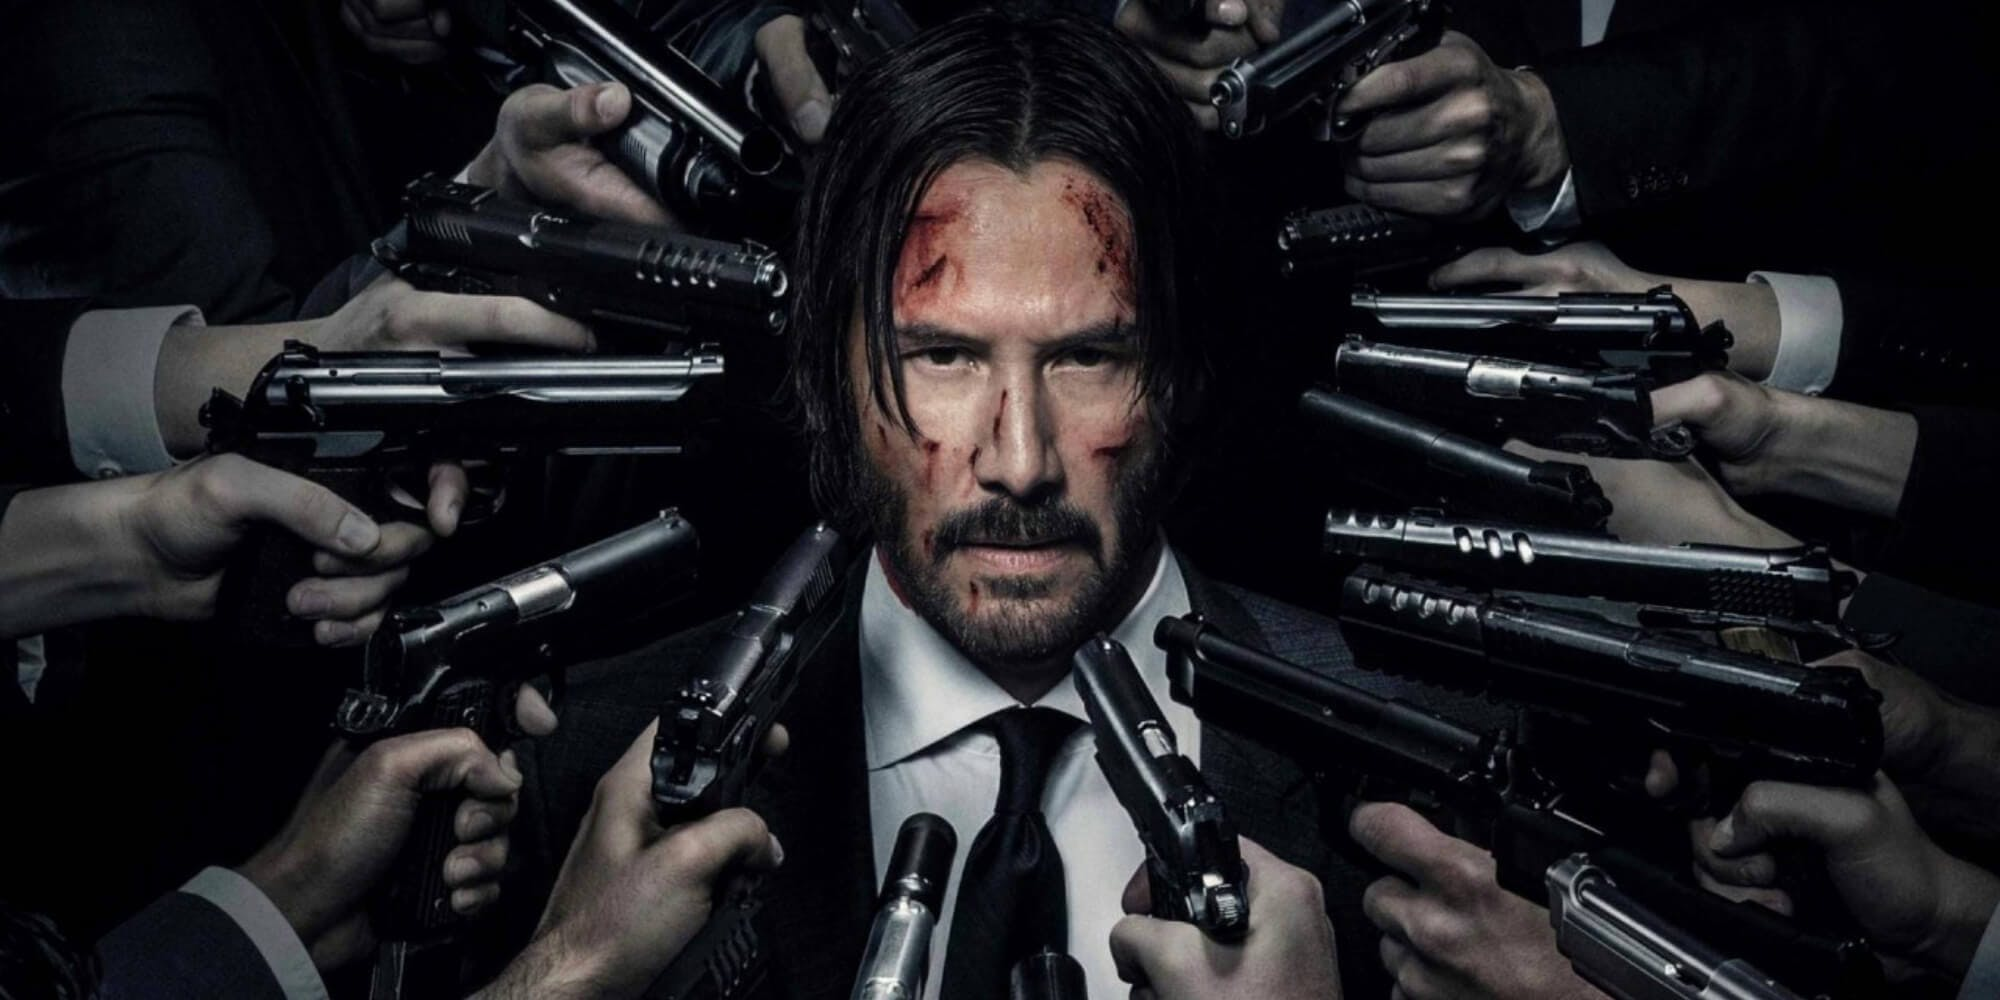 Photo of the movie John Wick where Keanu Reeves is surrounded by bad guys pointing guns at his face.